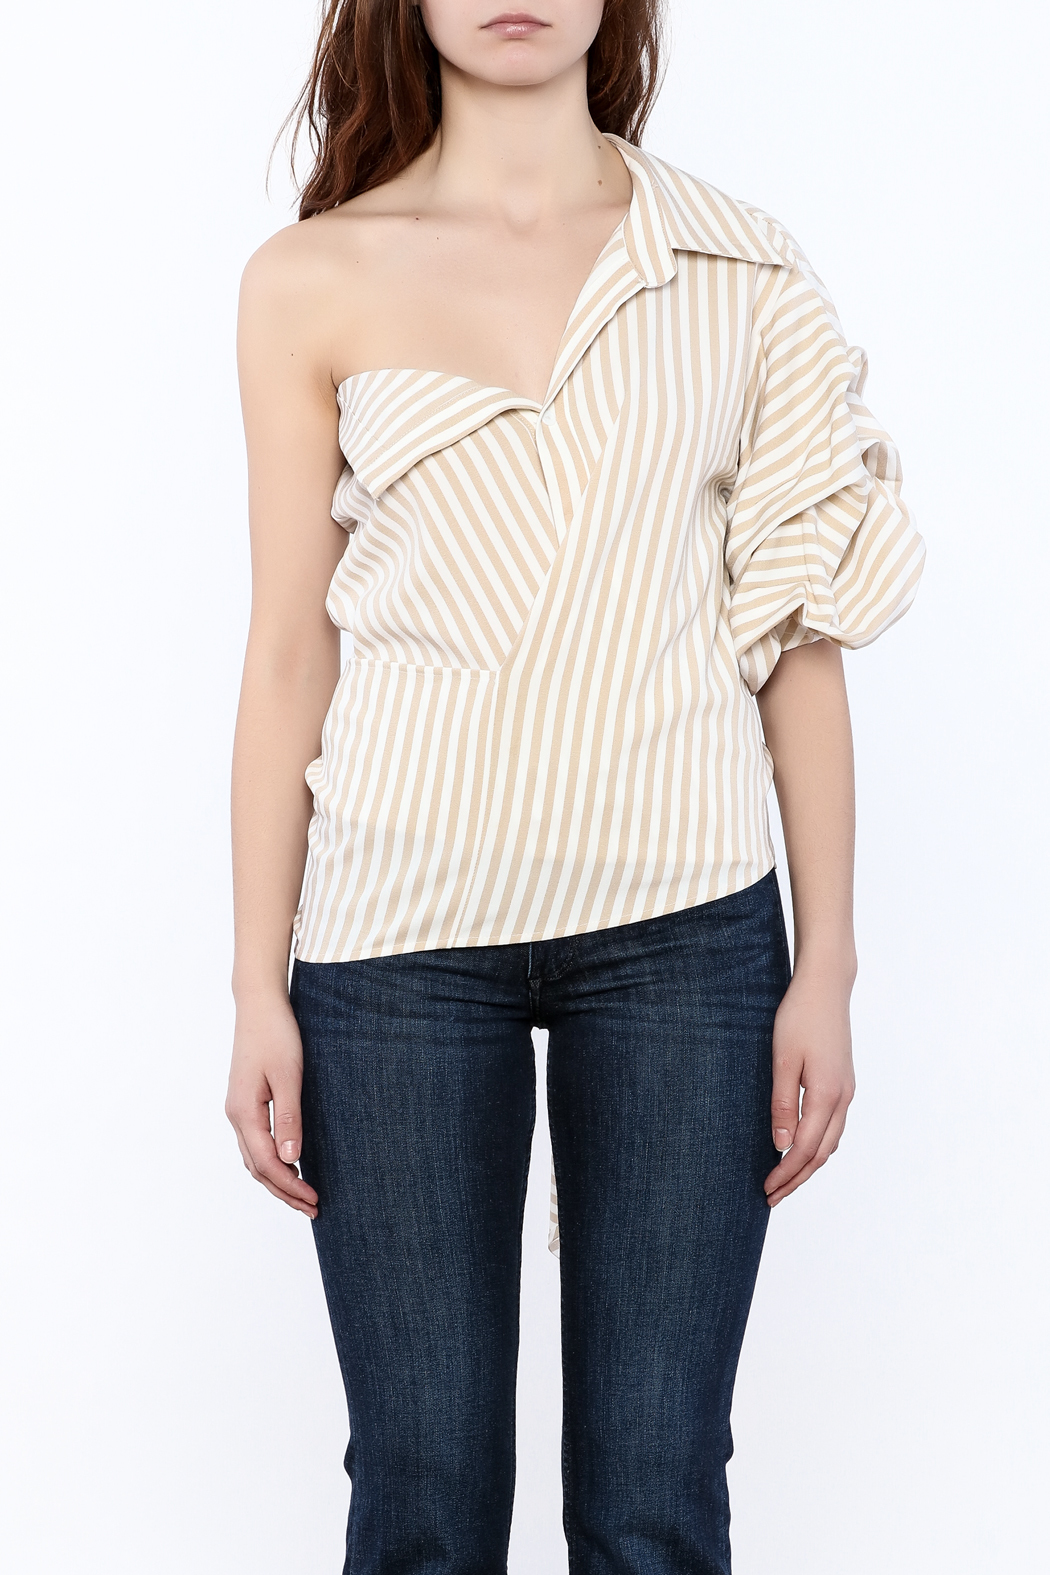 This is the product page for: One Shoulder Top FREE SHIPPING* FREE RETURNS Image carousel, press Enter to cycle through the images, press the Z key to zoom in and out of an image.